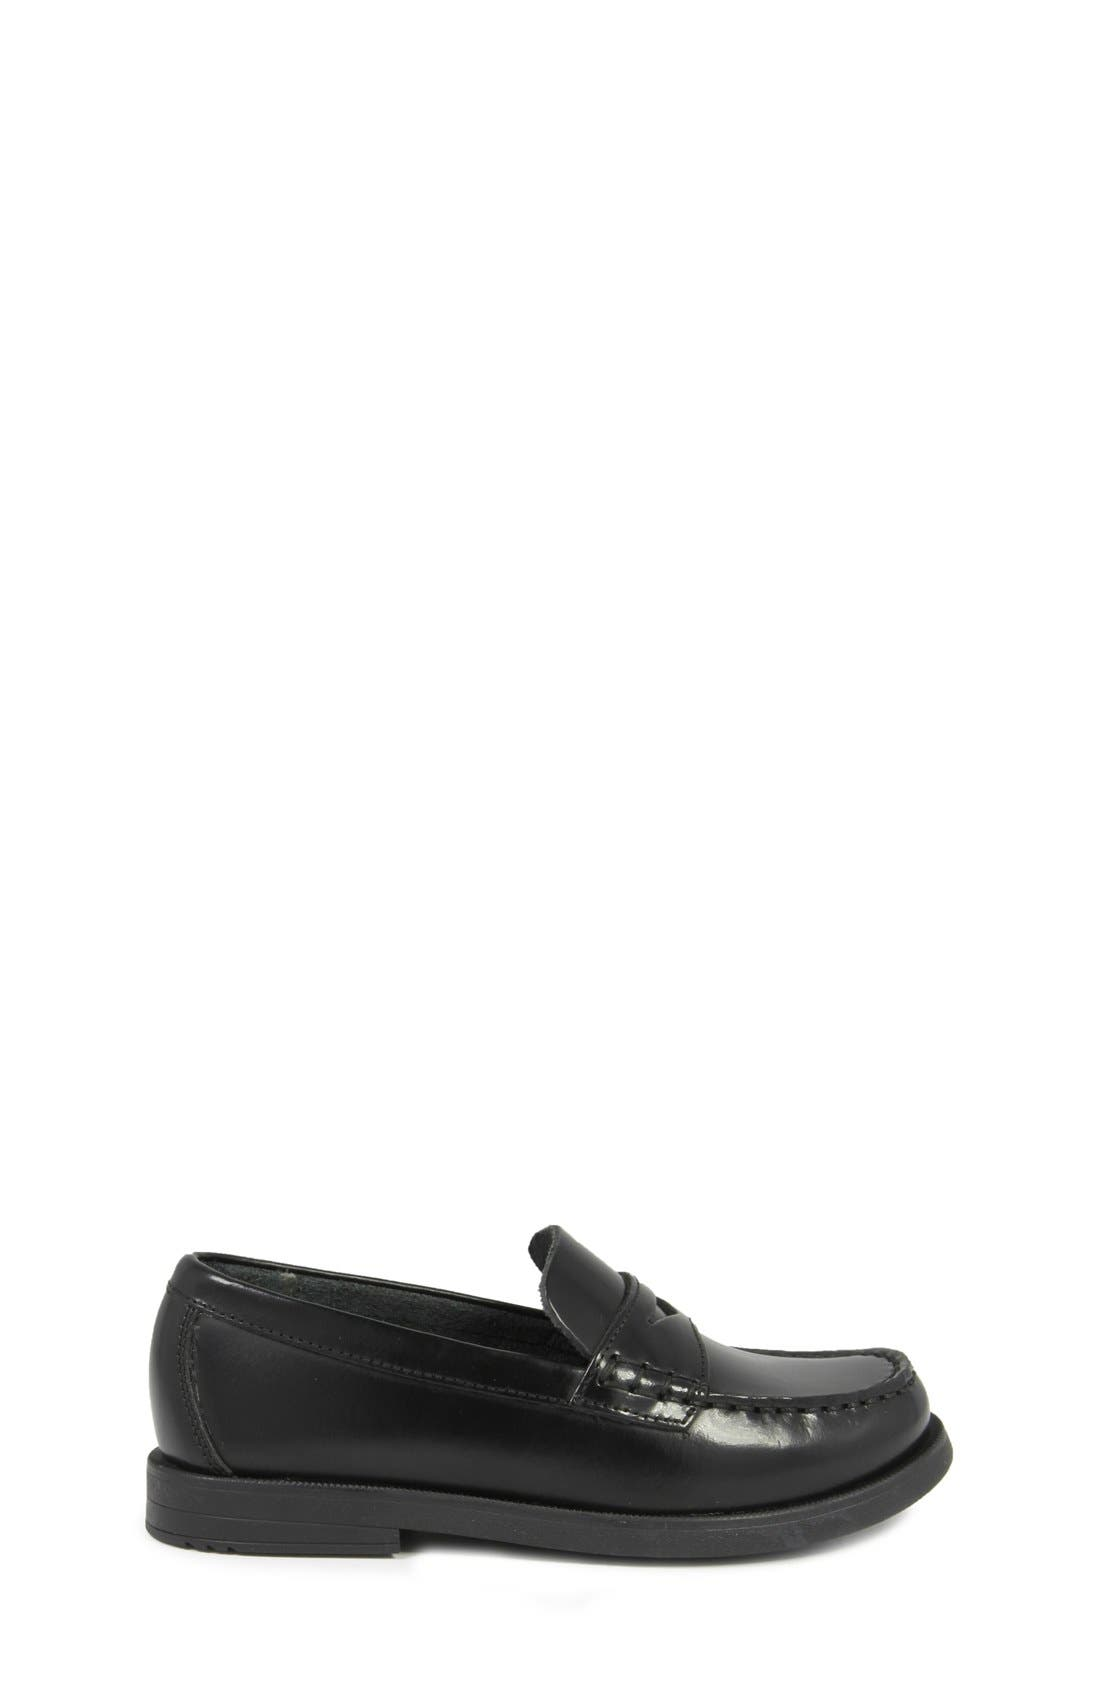 'Croquet' Penny Loafer,                             Alternate thumbnail 9, color,                             BLACK